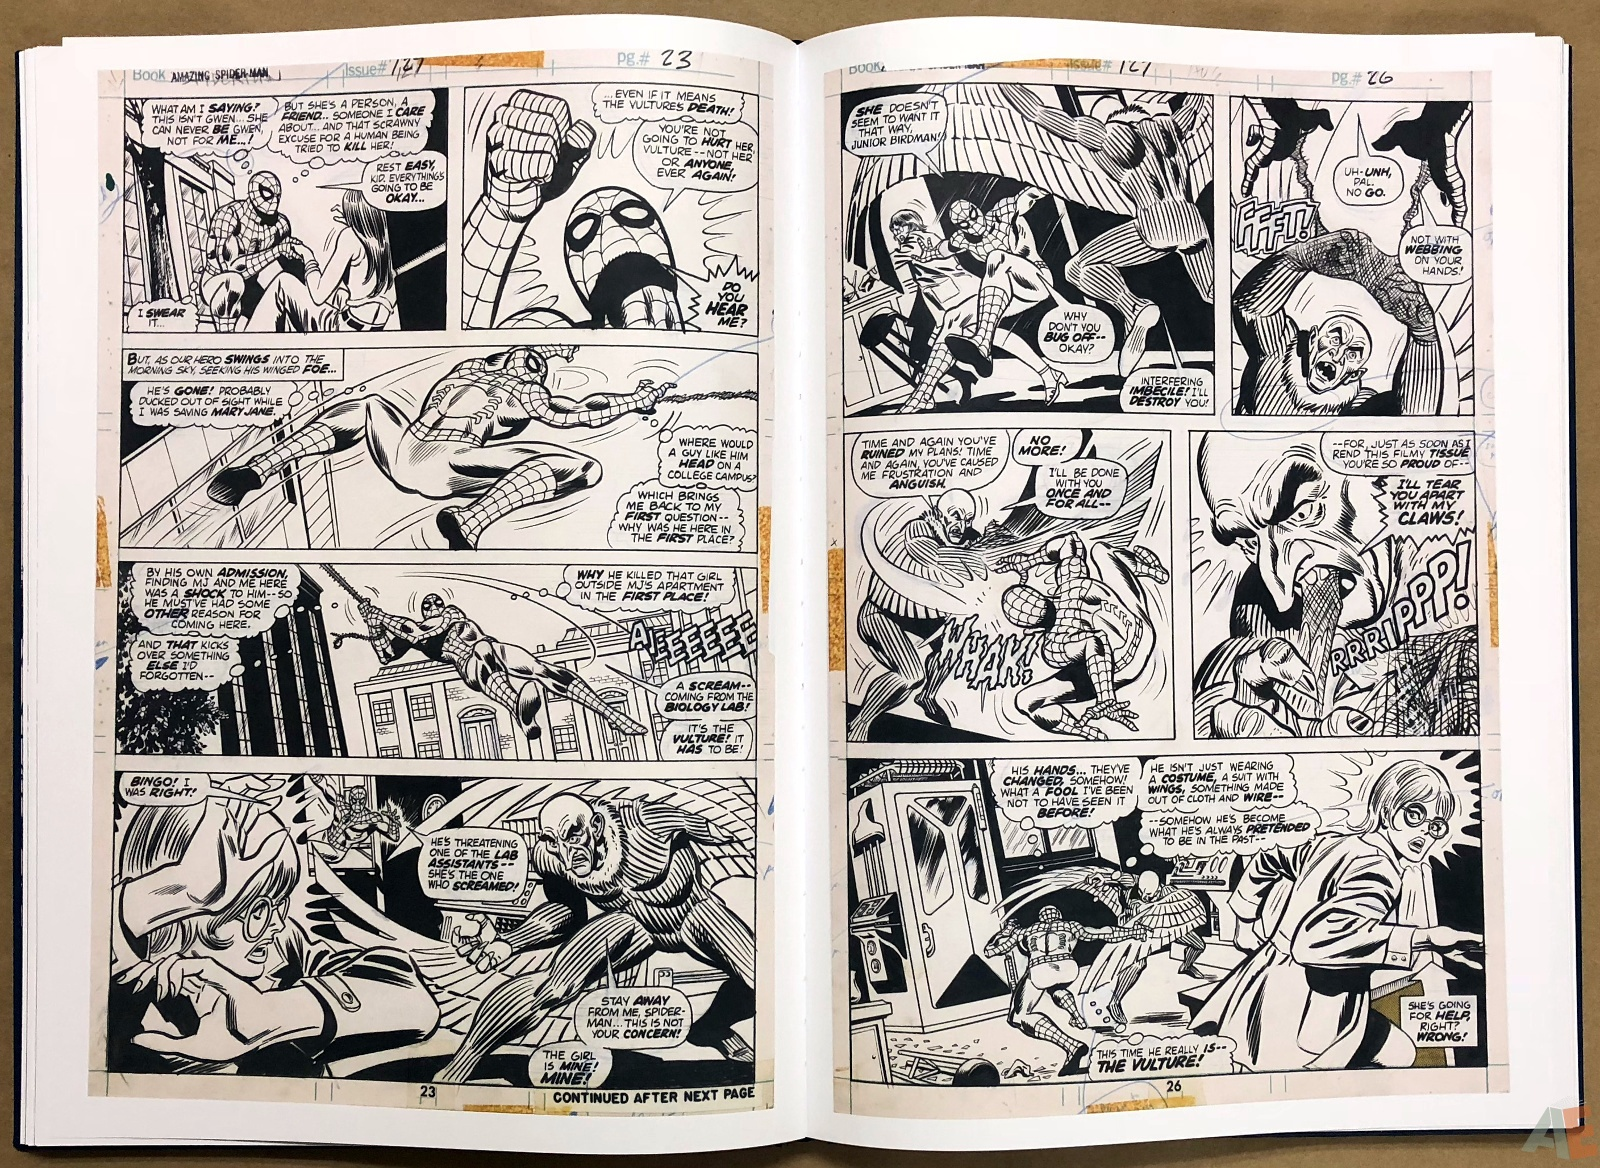 Ross Andru's The Amazing Spider-Man Artist's Edition 24